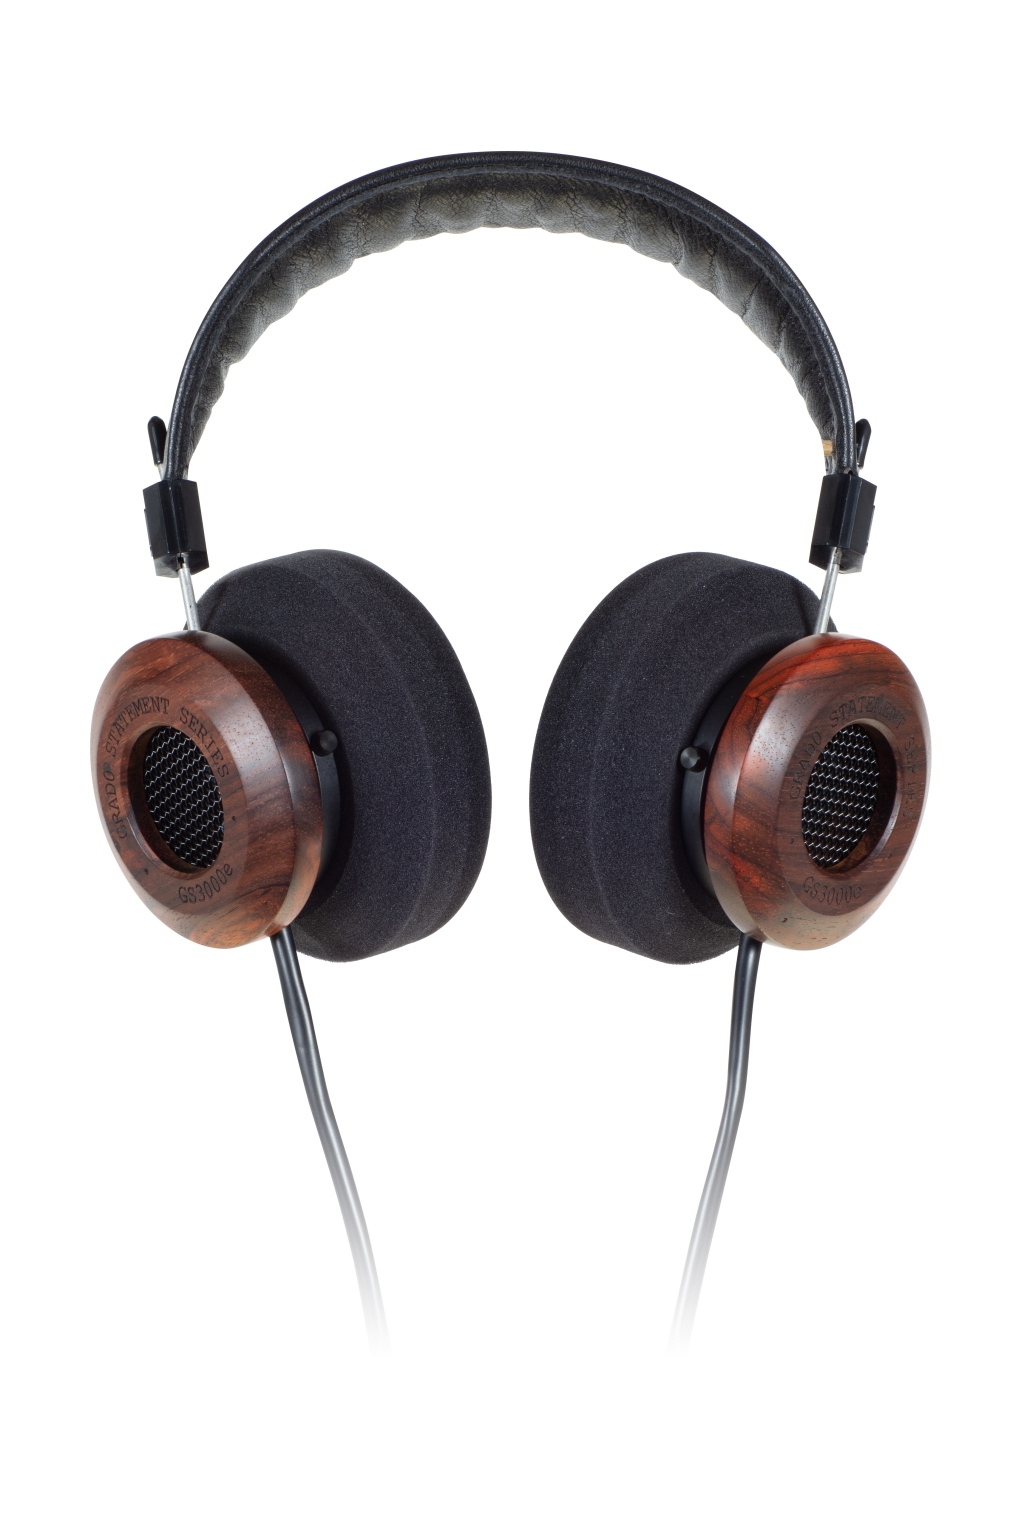 resize_1_Grado Labs GS3000e Headphones-2